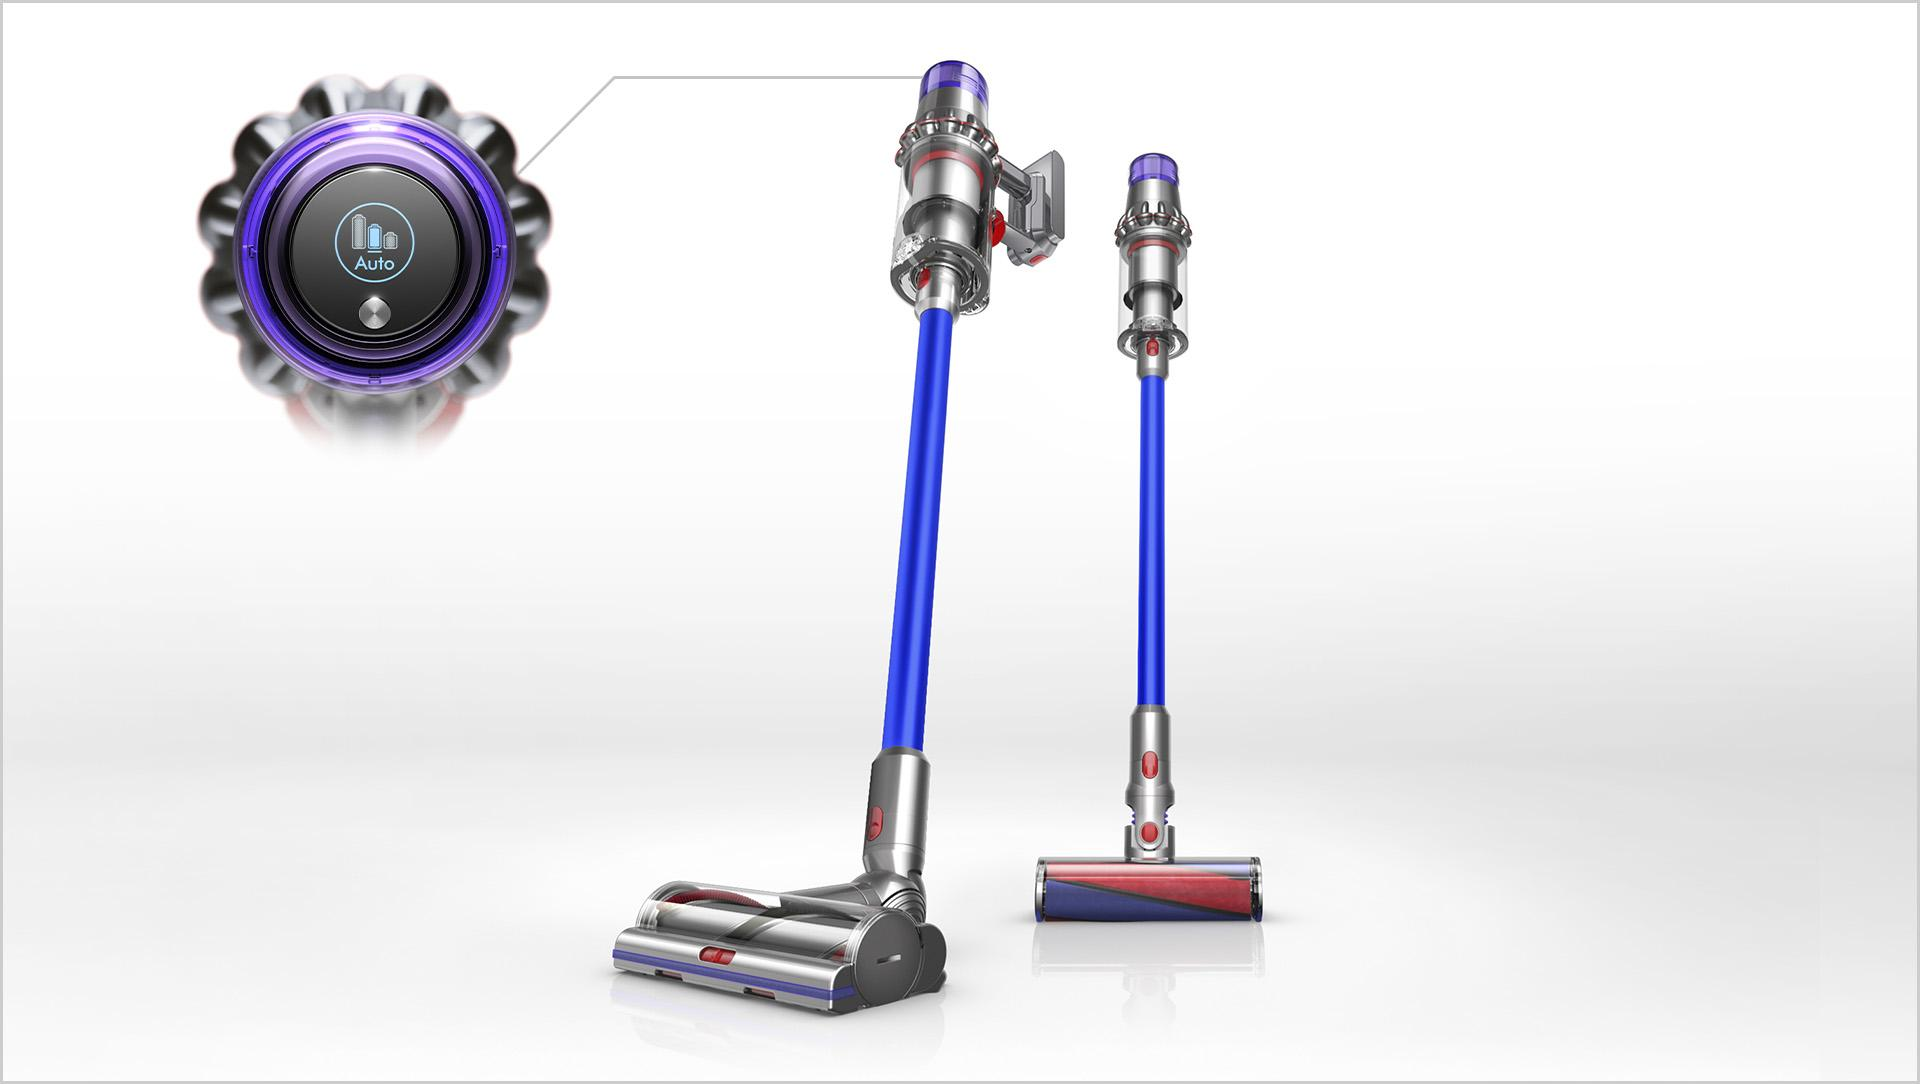 Dyson V11 vaccum Cleaner